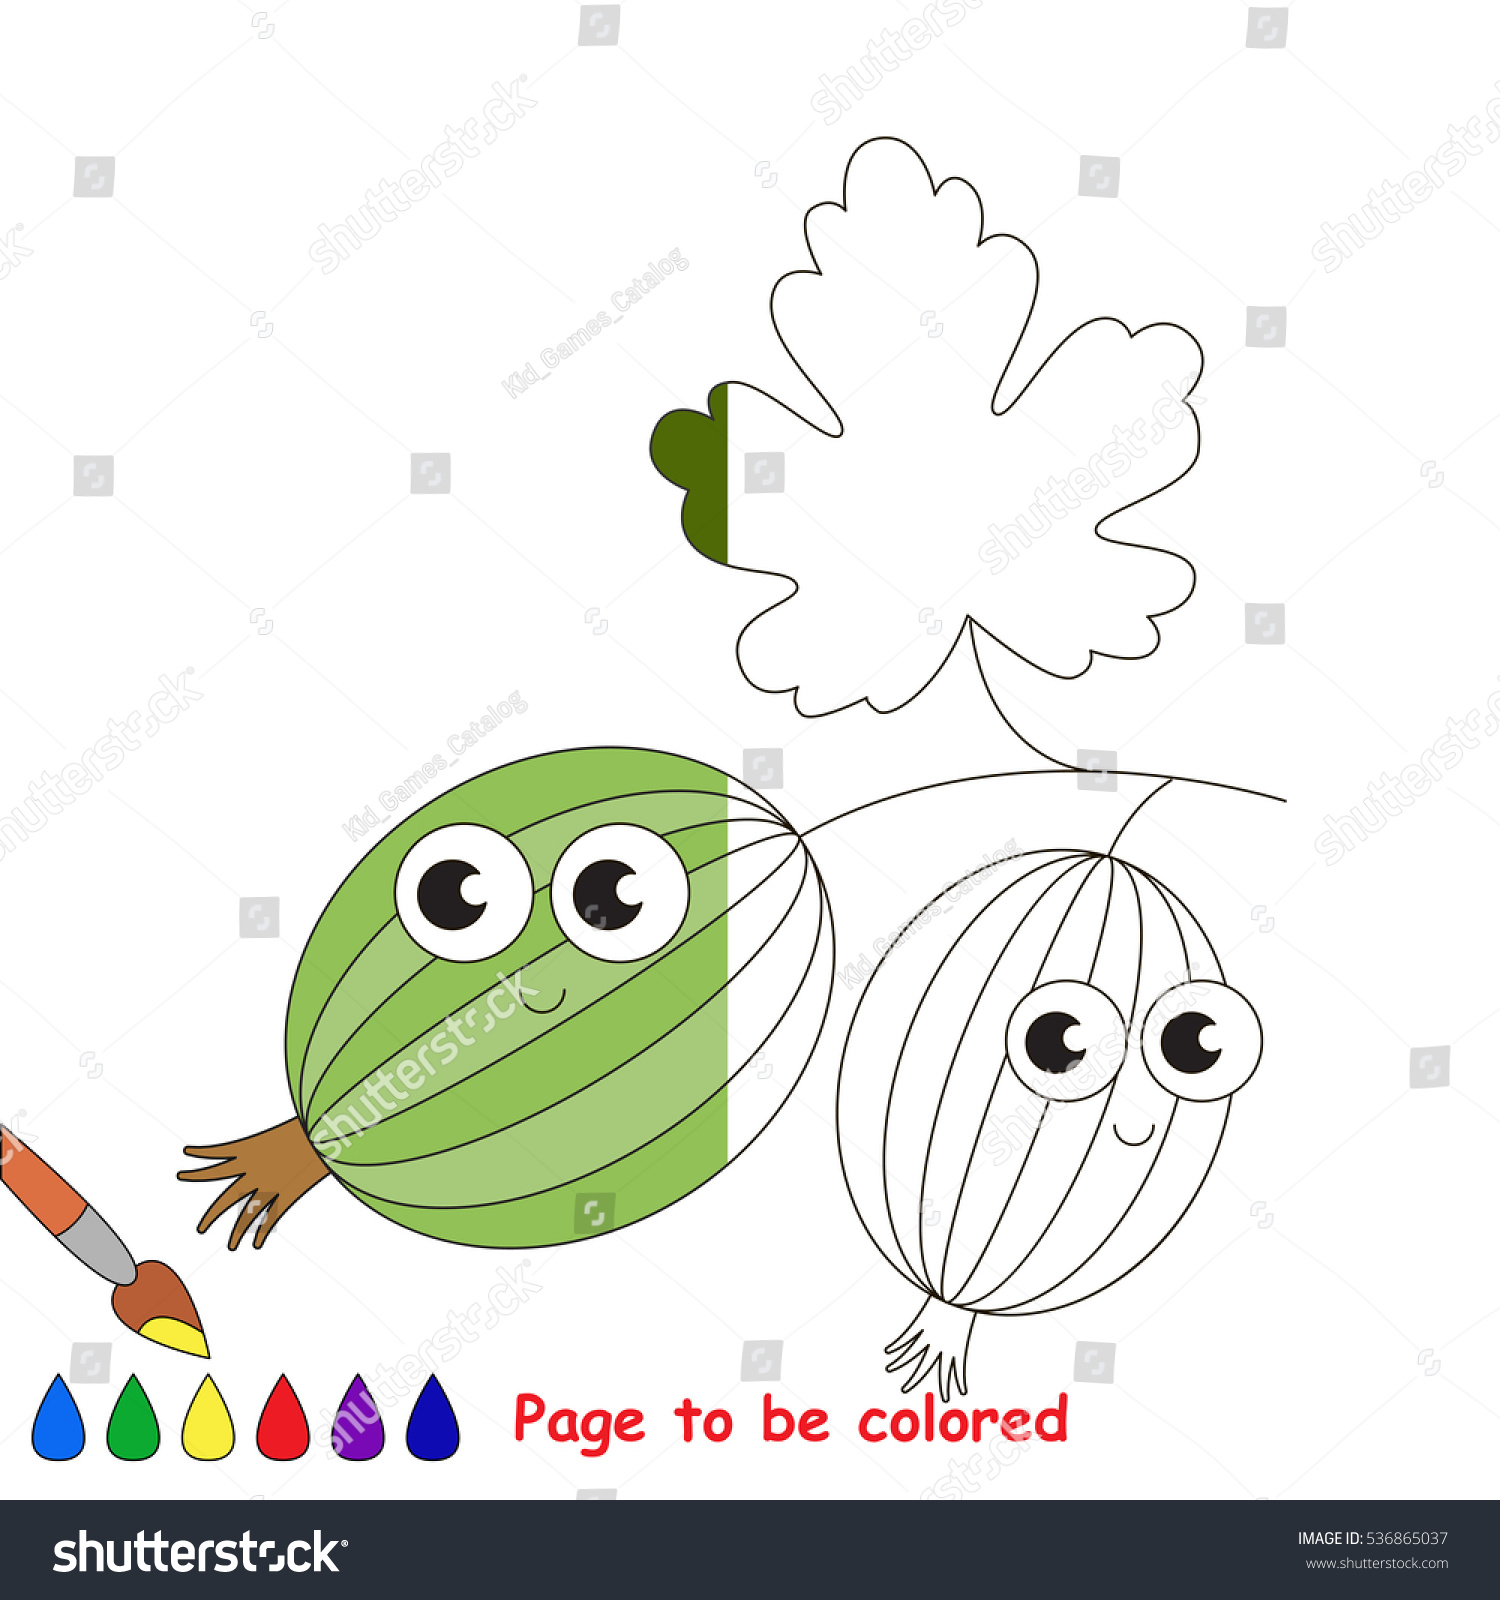 Gooseberry Be Colored Coloring Book Educate Stock Vector 536865037 ...